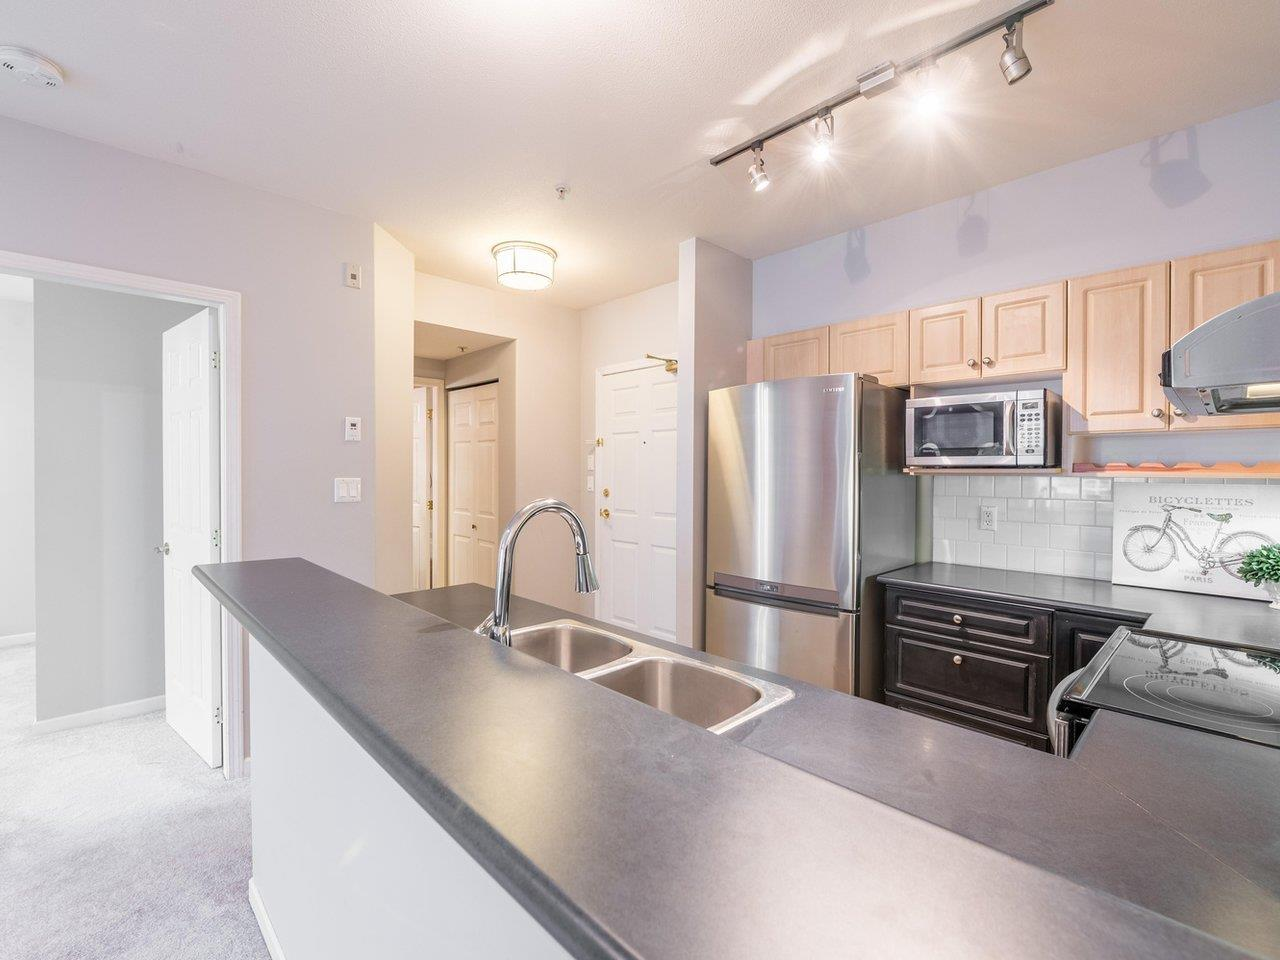 412 3629 DEERCREST DRIVE - Roche Point Apartment/Condo for sale, 1 Bedroom (R2525424) - #10